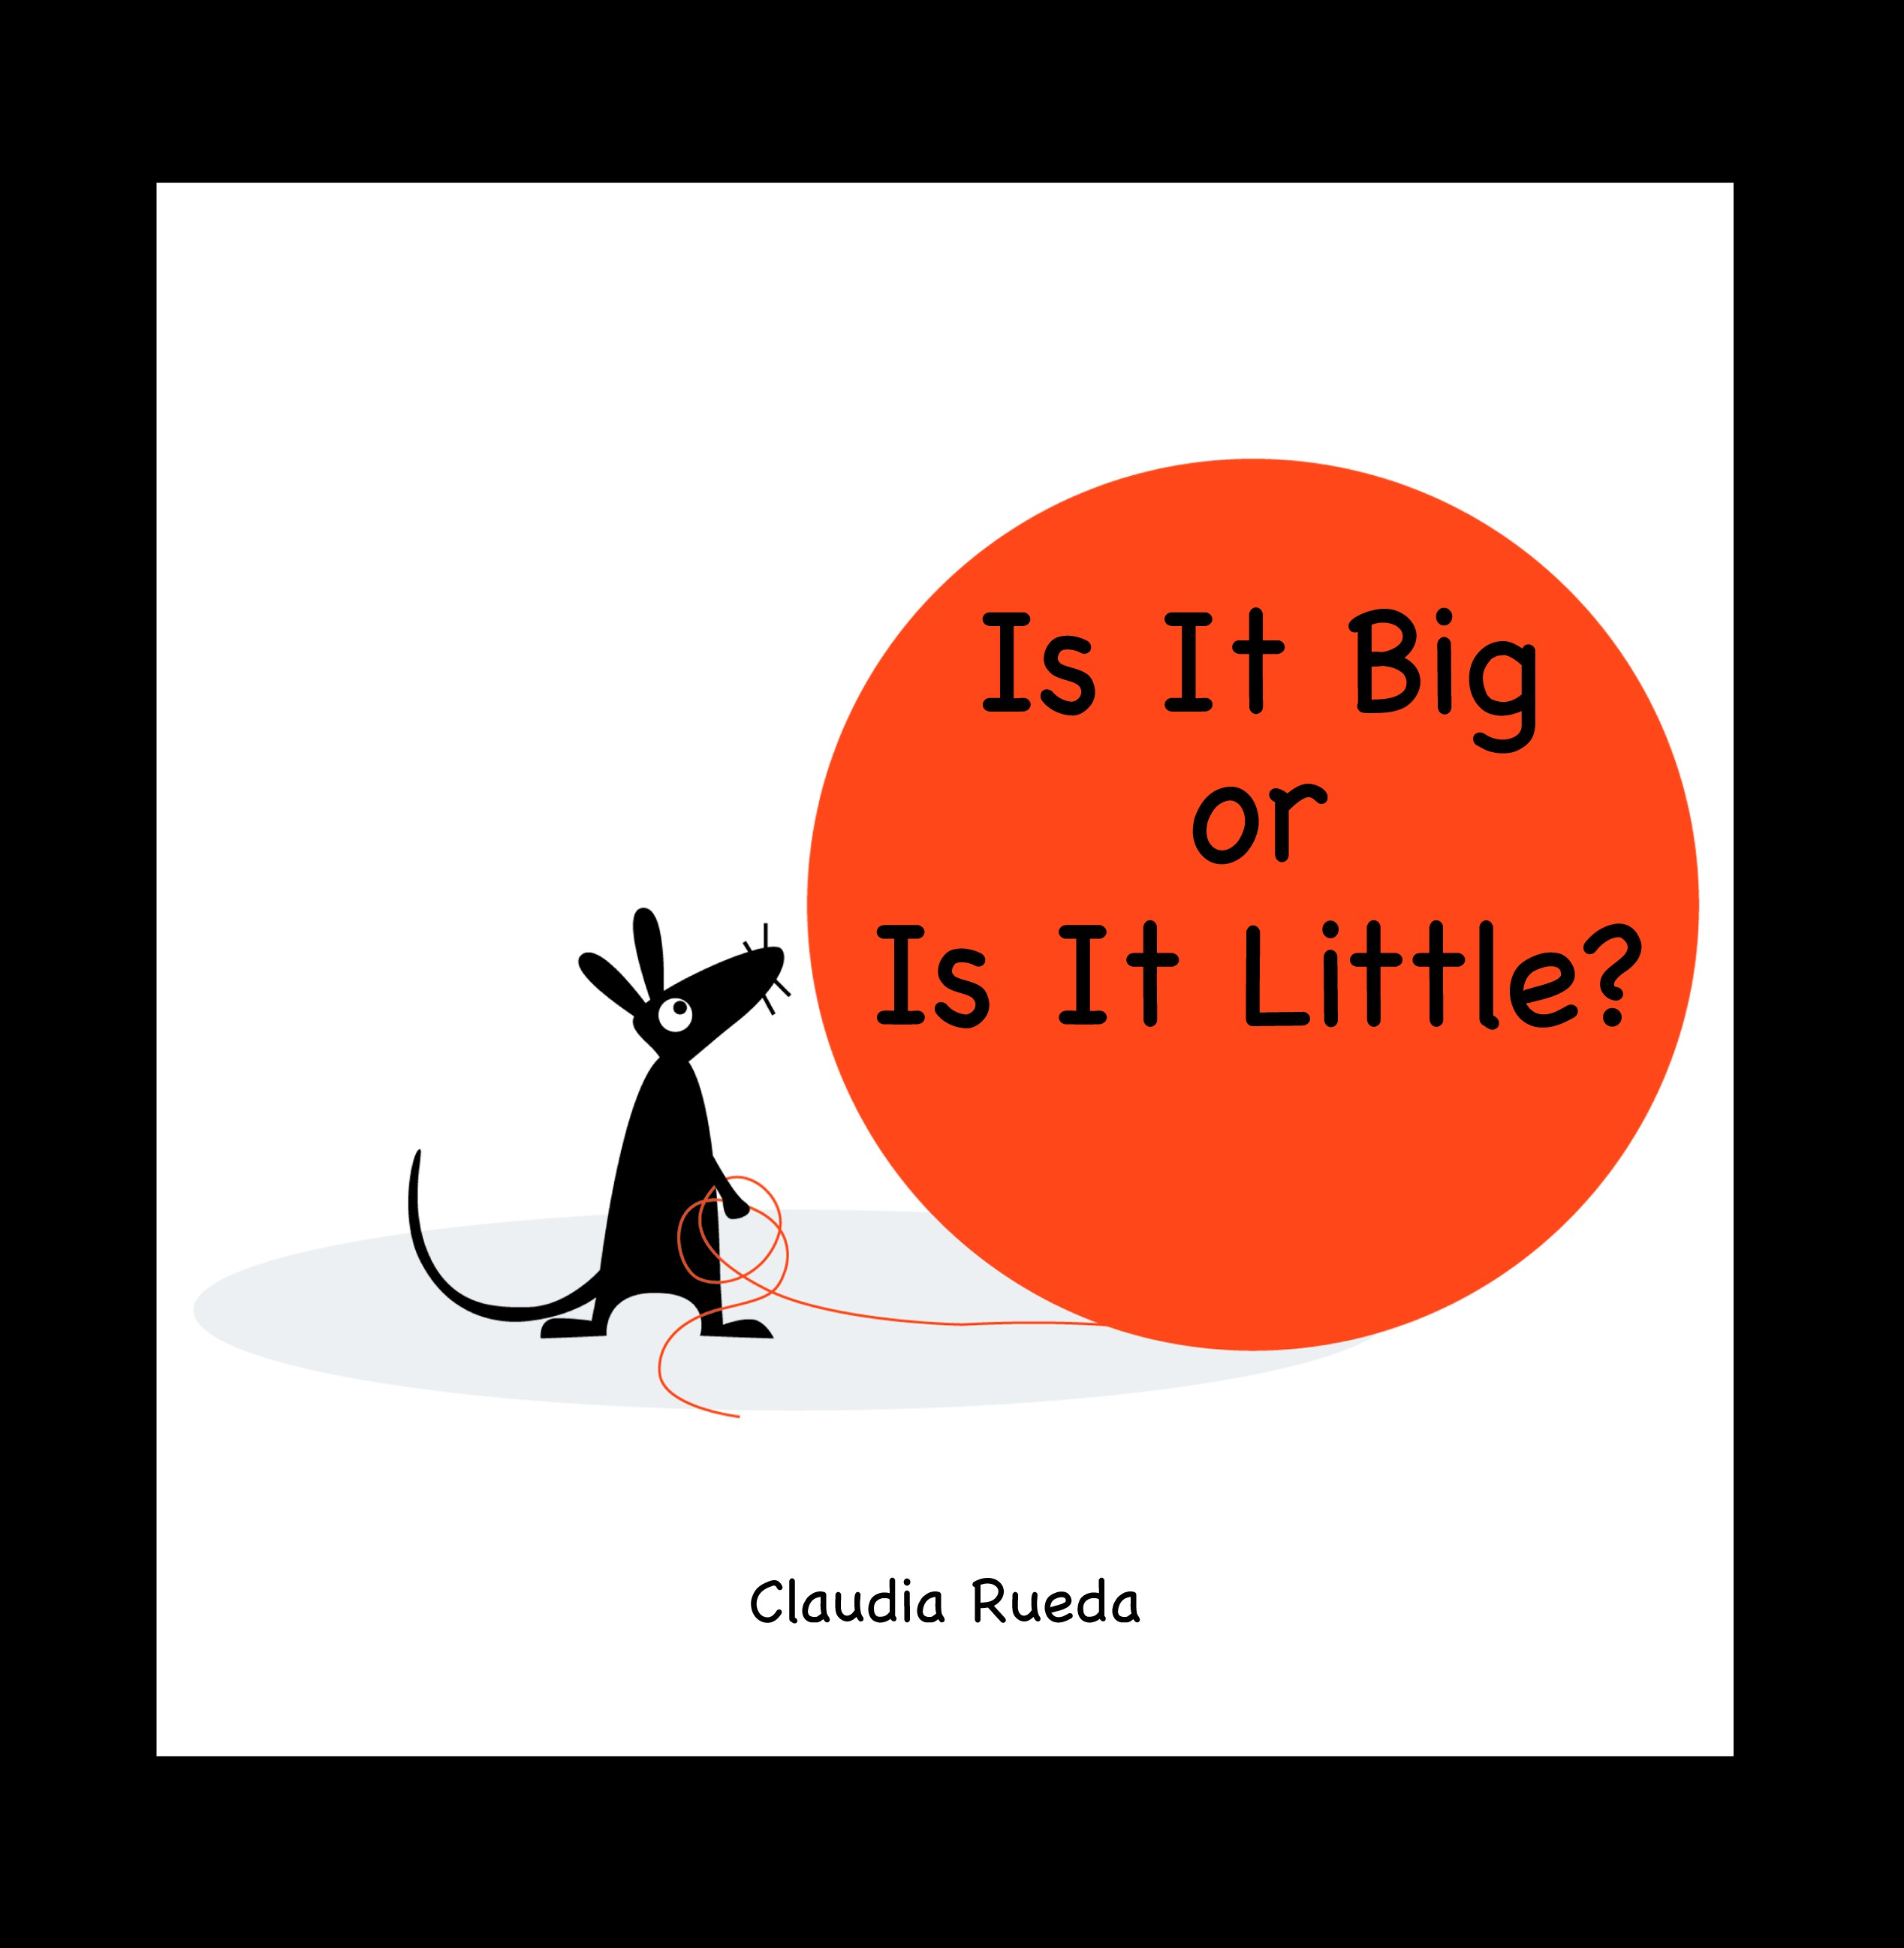 Is It Big or Is It Little?